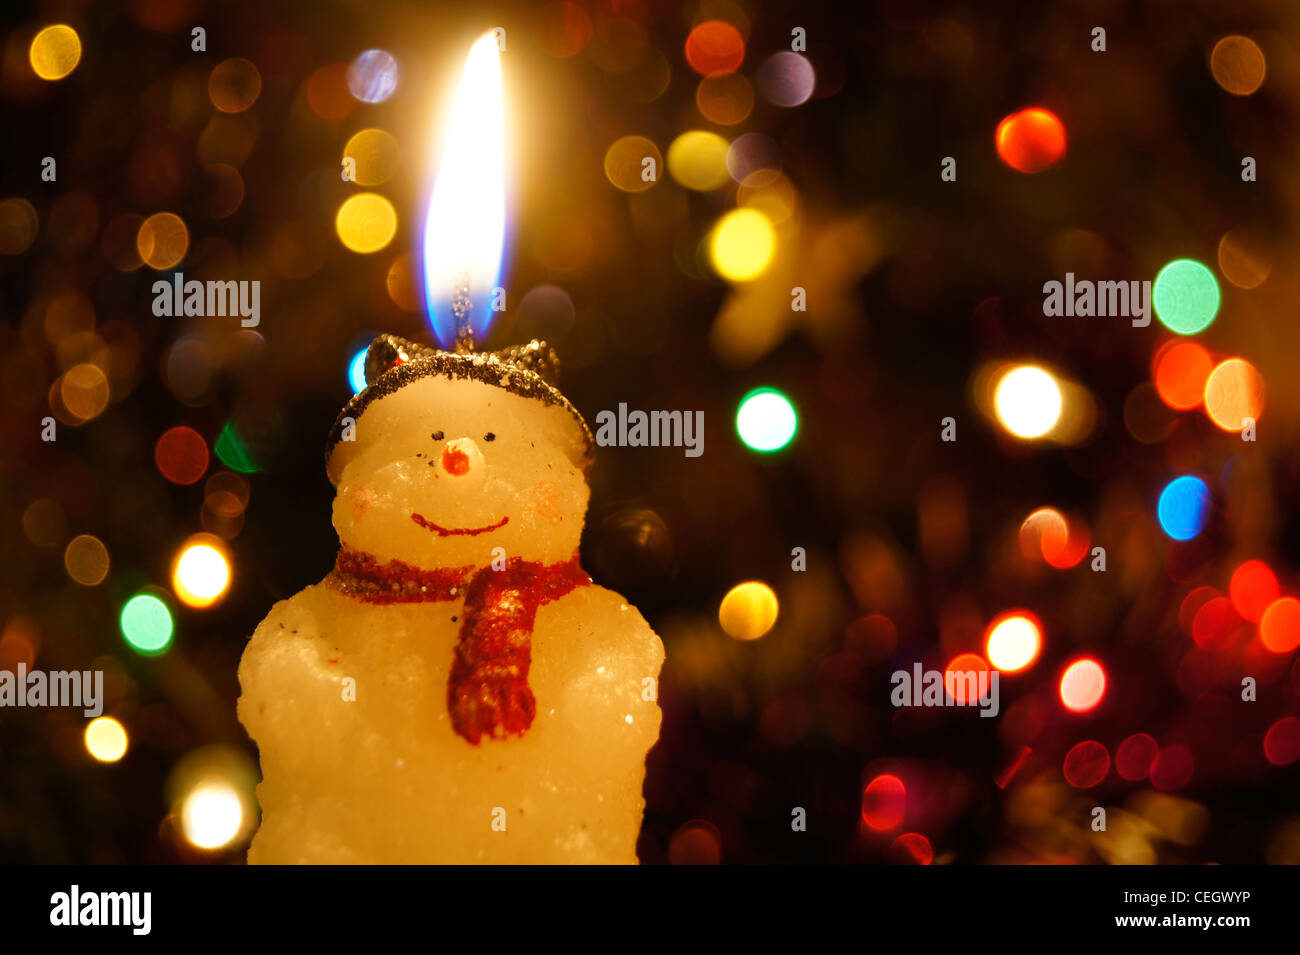 a snowman candle flame on a blurry christmas light background